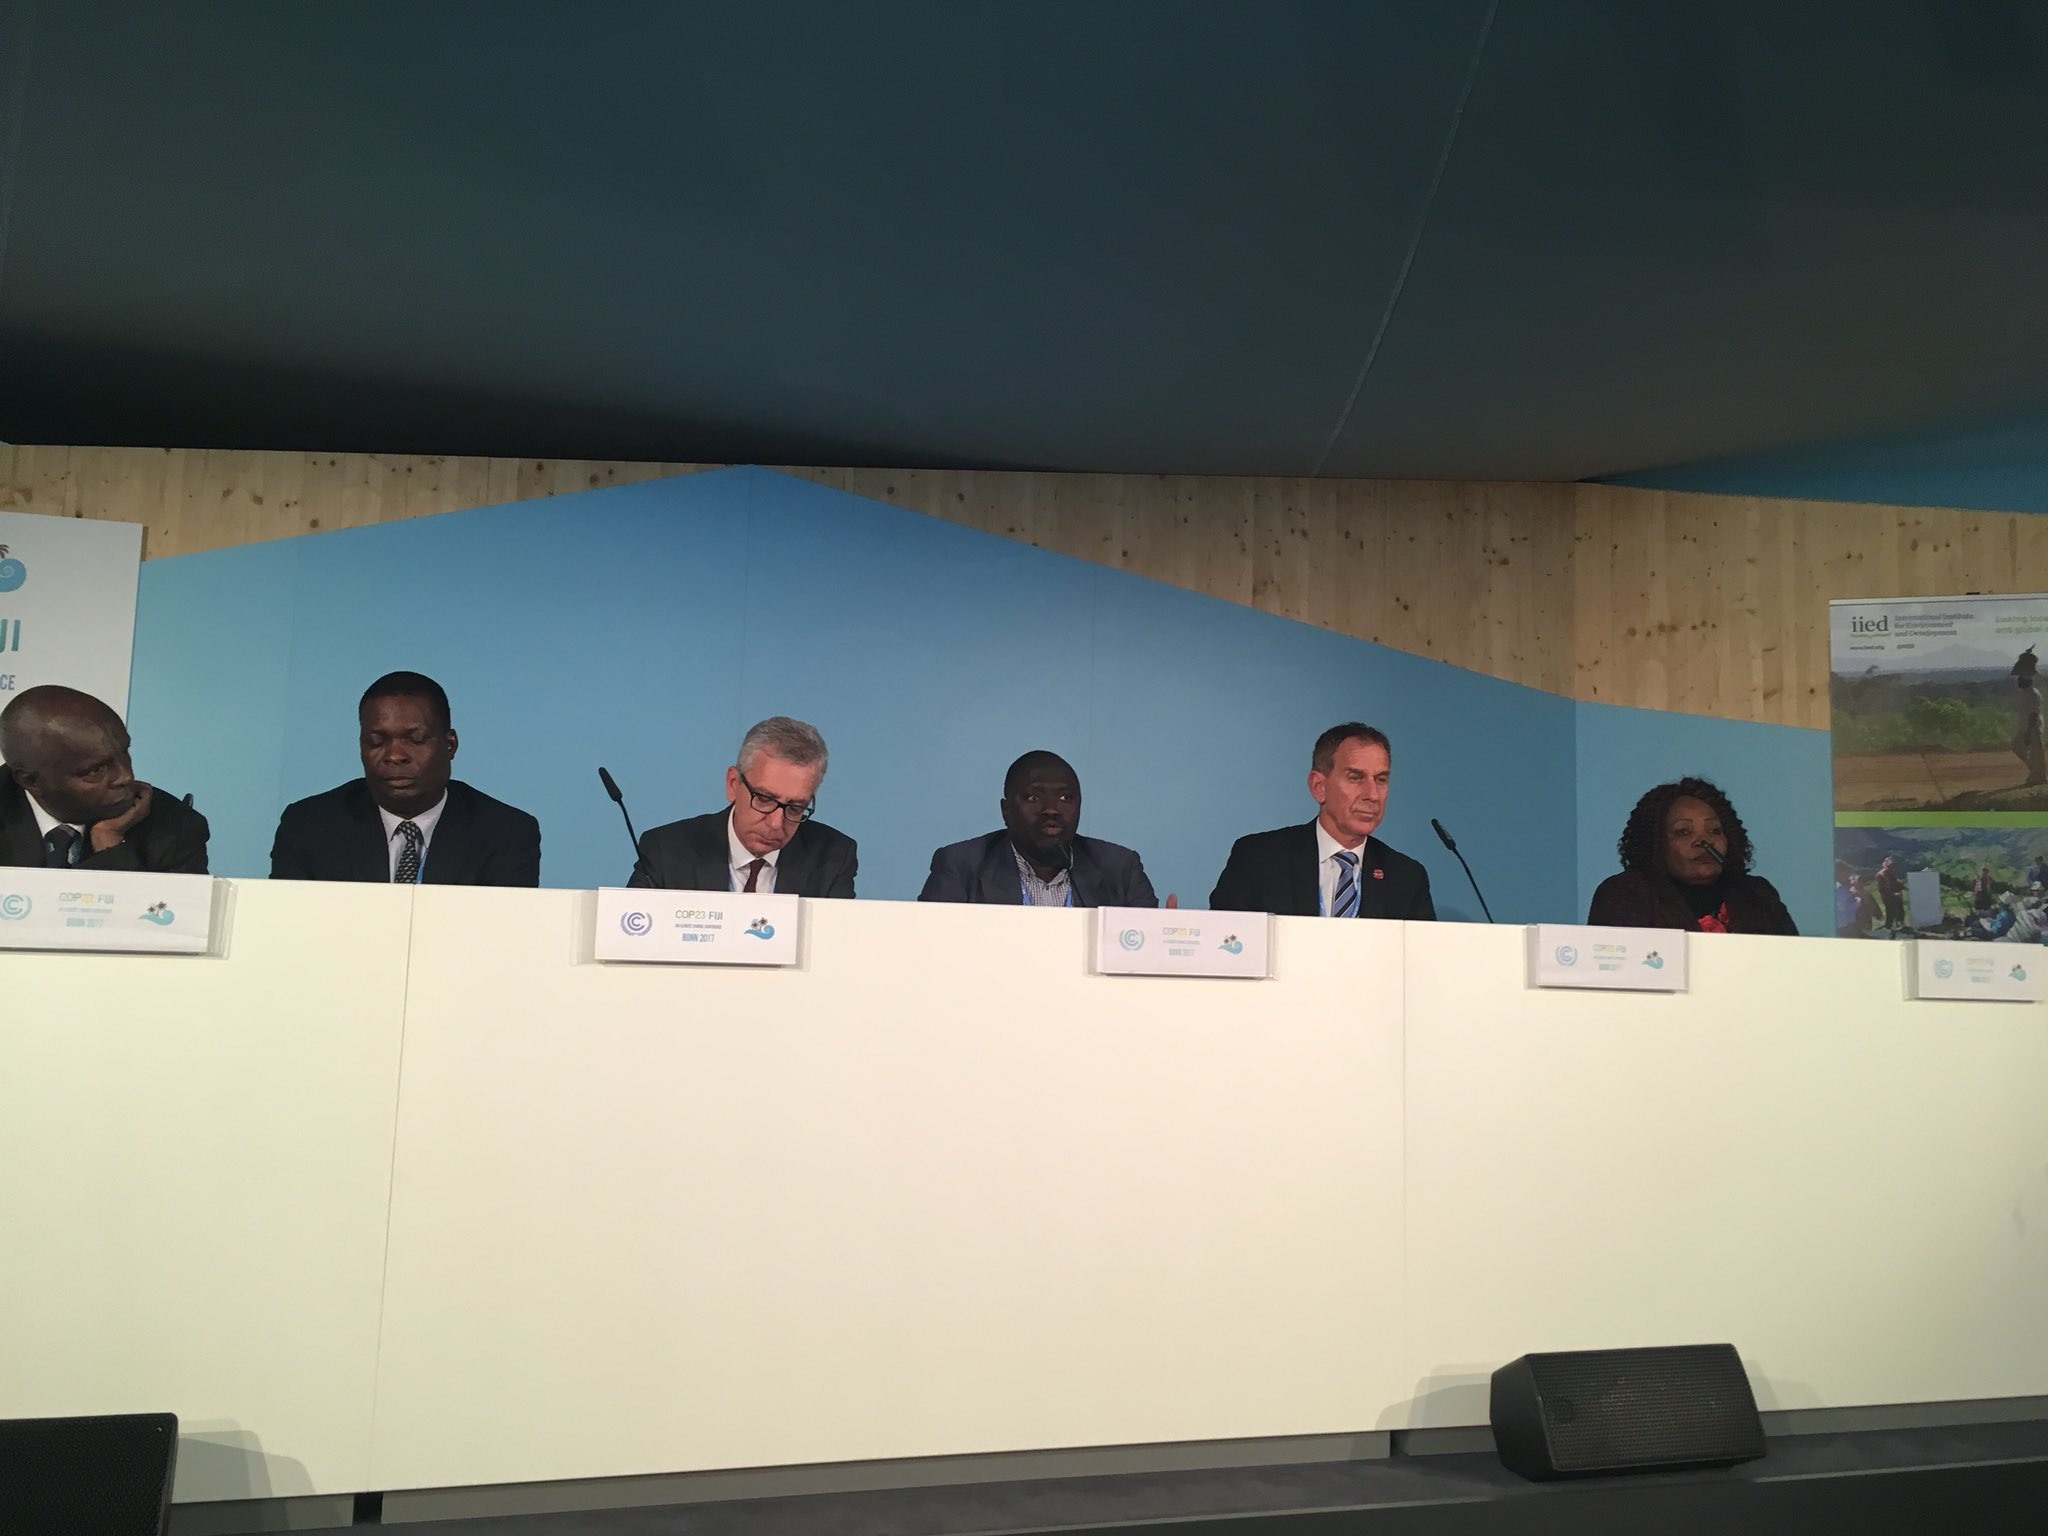 Minister Gambia calls for getting climate finance to front lines in LDCs. And support for building the capacity for local govts to work with communities. #cop23 #LDCs #MoneyWhereItMatters #IIED #AdaConsortium https://t.co/CCCHou89U2